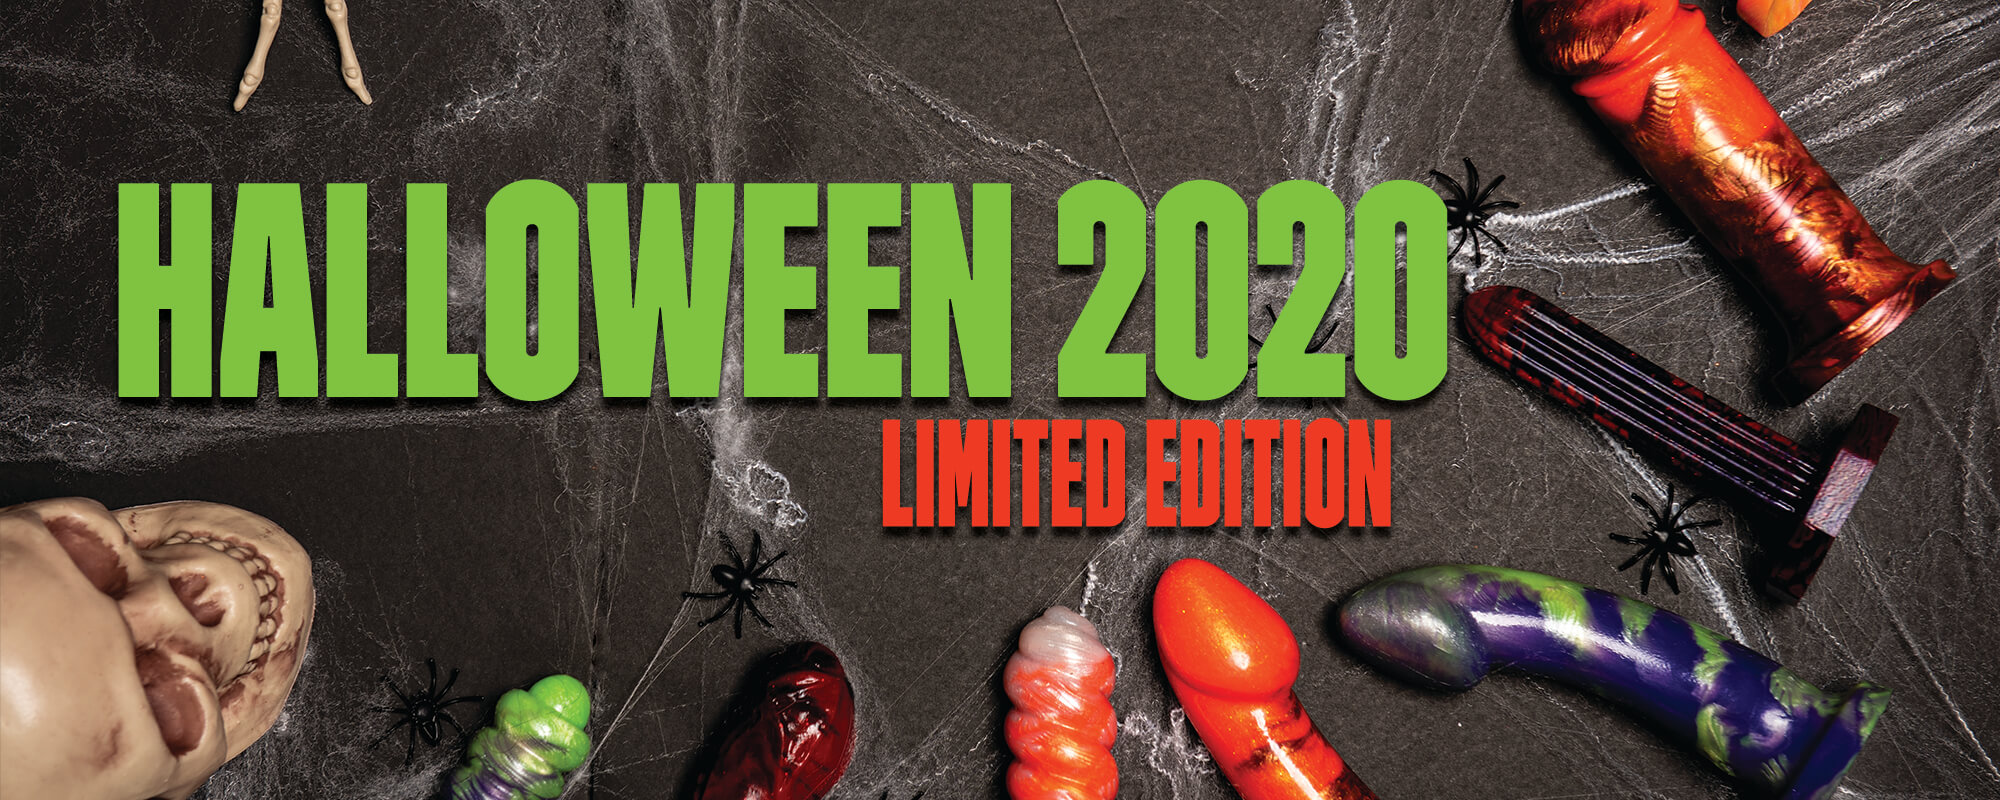 GODEMICHE HALLOWEEN LIMITED EDITION COLOURS 2020 HOME PAGE SLIDE